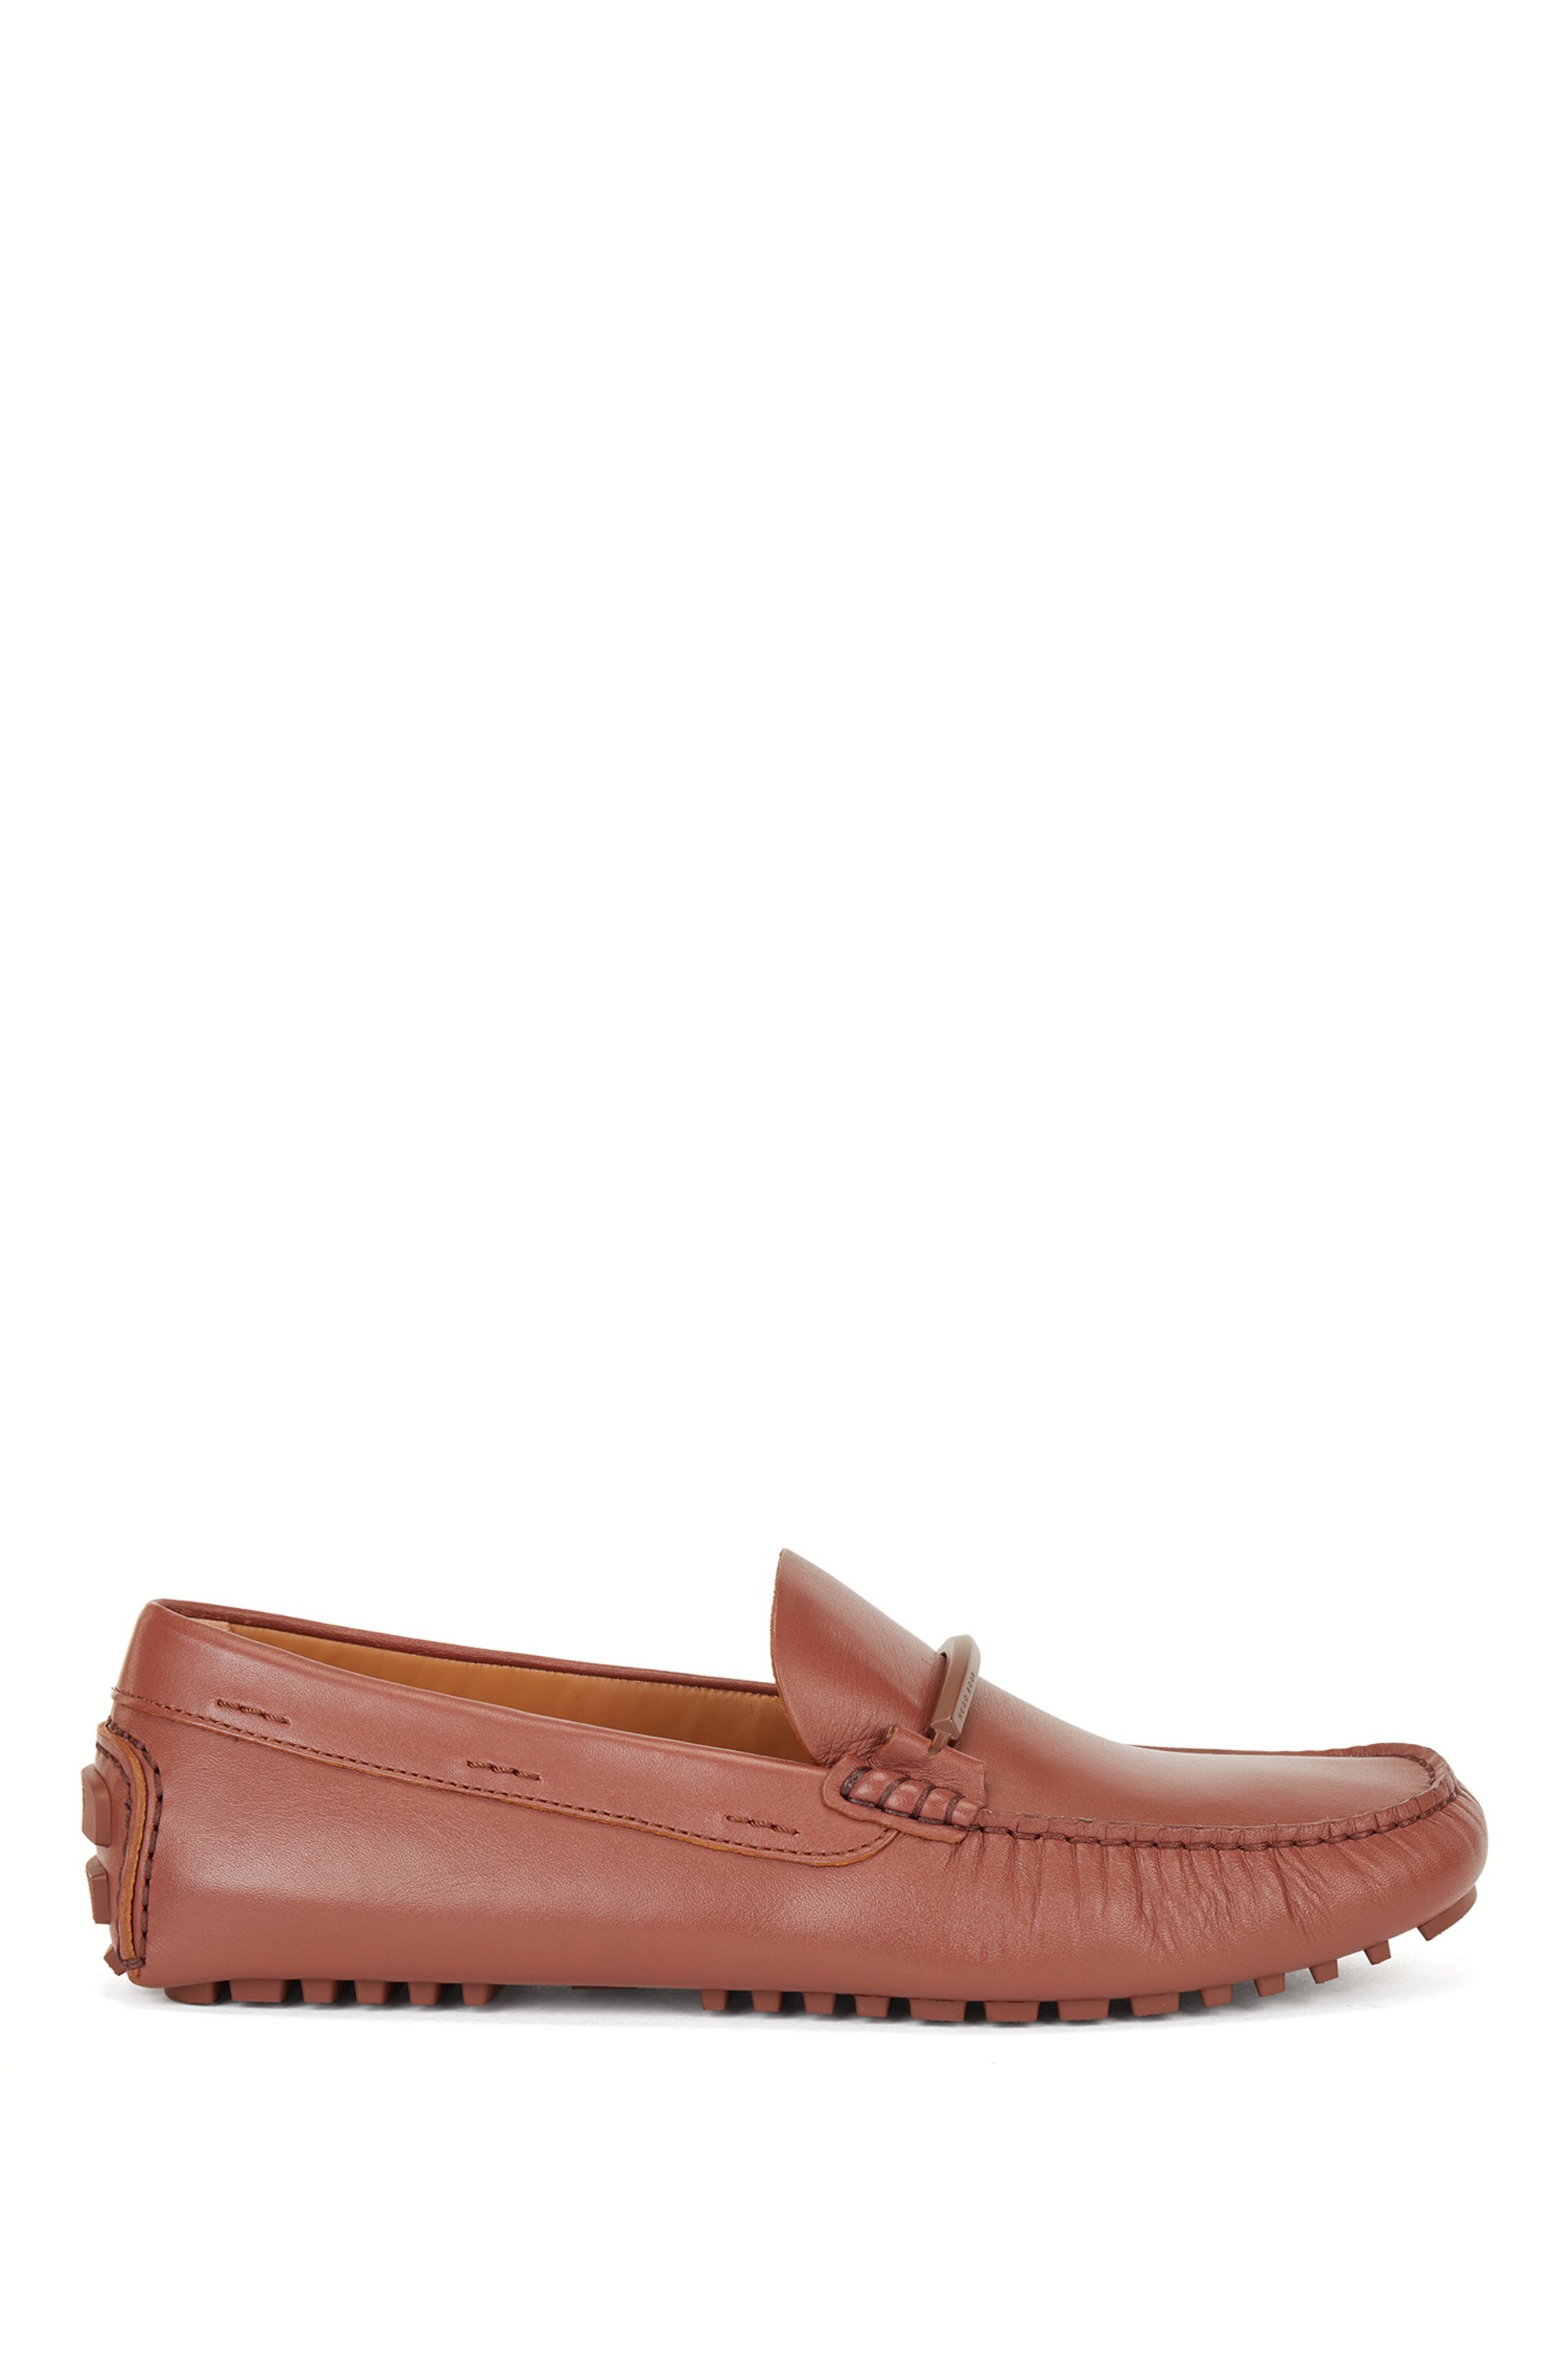 Driver-sole moccasins in leather with coloured-metal hardware, Brown